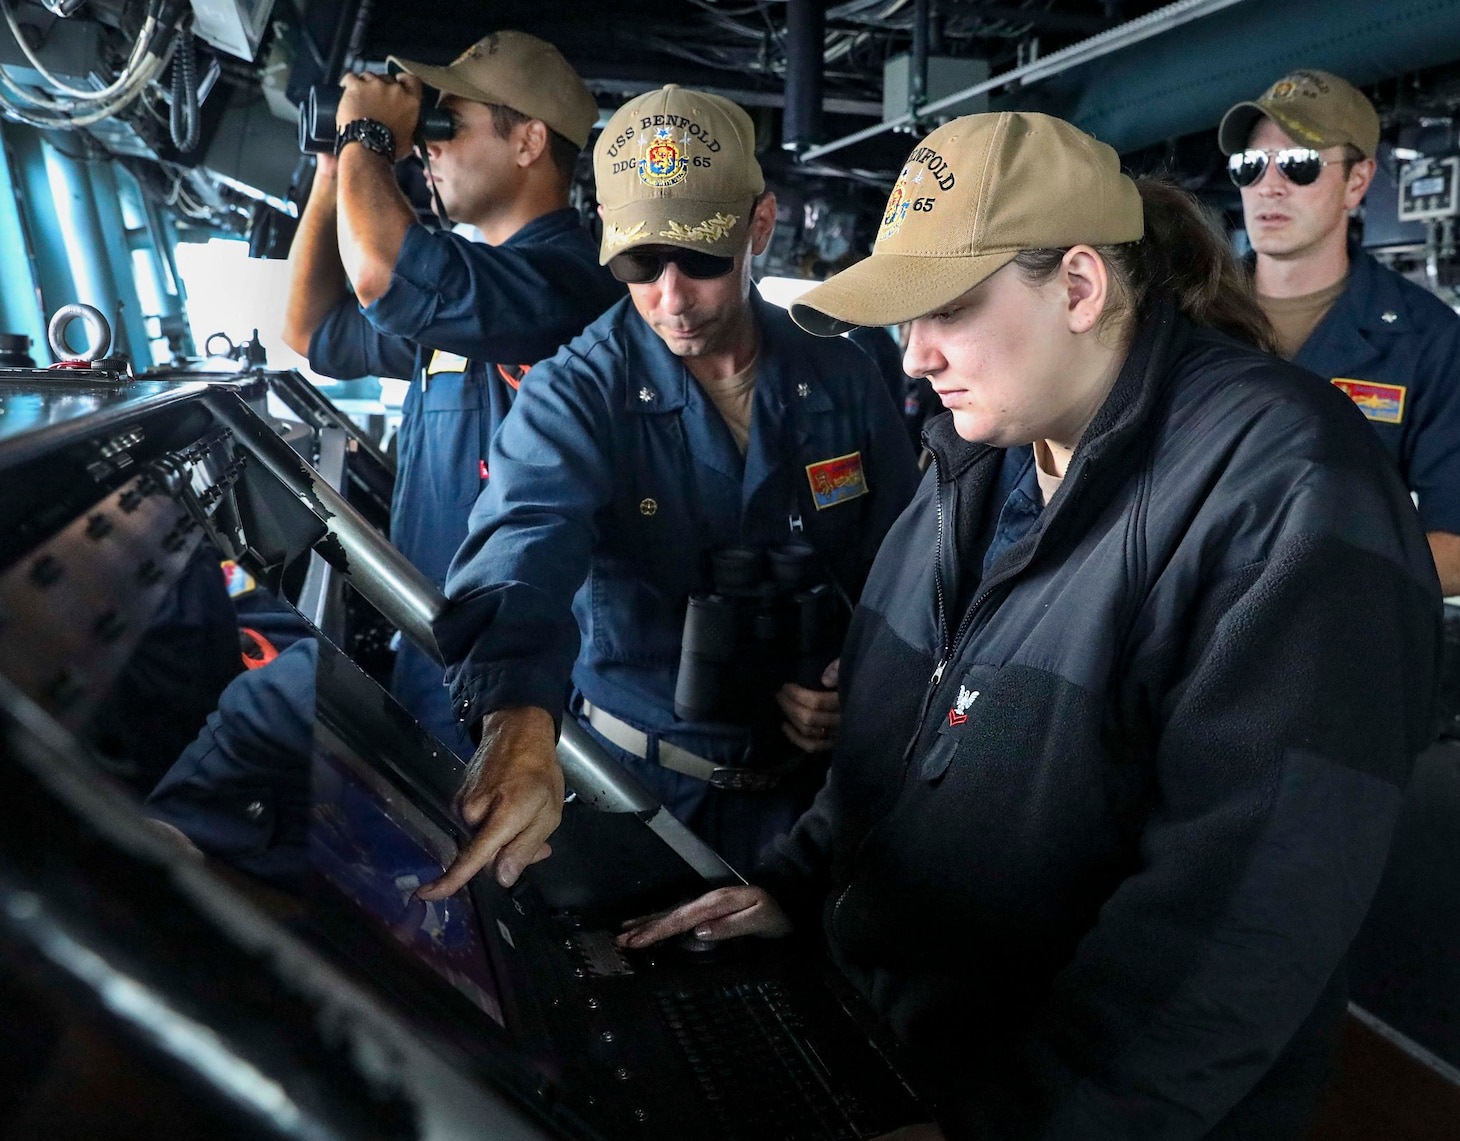 SOUTH CHINA SEA (Sept. 08, 2021) Operations Specialist 2nd Class Brittany Sopolosky, from Anderson, S.C., monitors surface contacts from the bridge of the Arleigh Burke-class guided-missile destroyer USS Benfold (DDG 65) as the ship transits the South China Sea conducting routine underway operations. Benfold is forward-deployed to the U.S. 7th Fleet area of operations in support of a free and open Indo-Pacific. (U.S. Navy photo by Mass Communication Specialist 1st Class Deanna C. Gonzales)